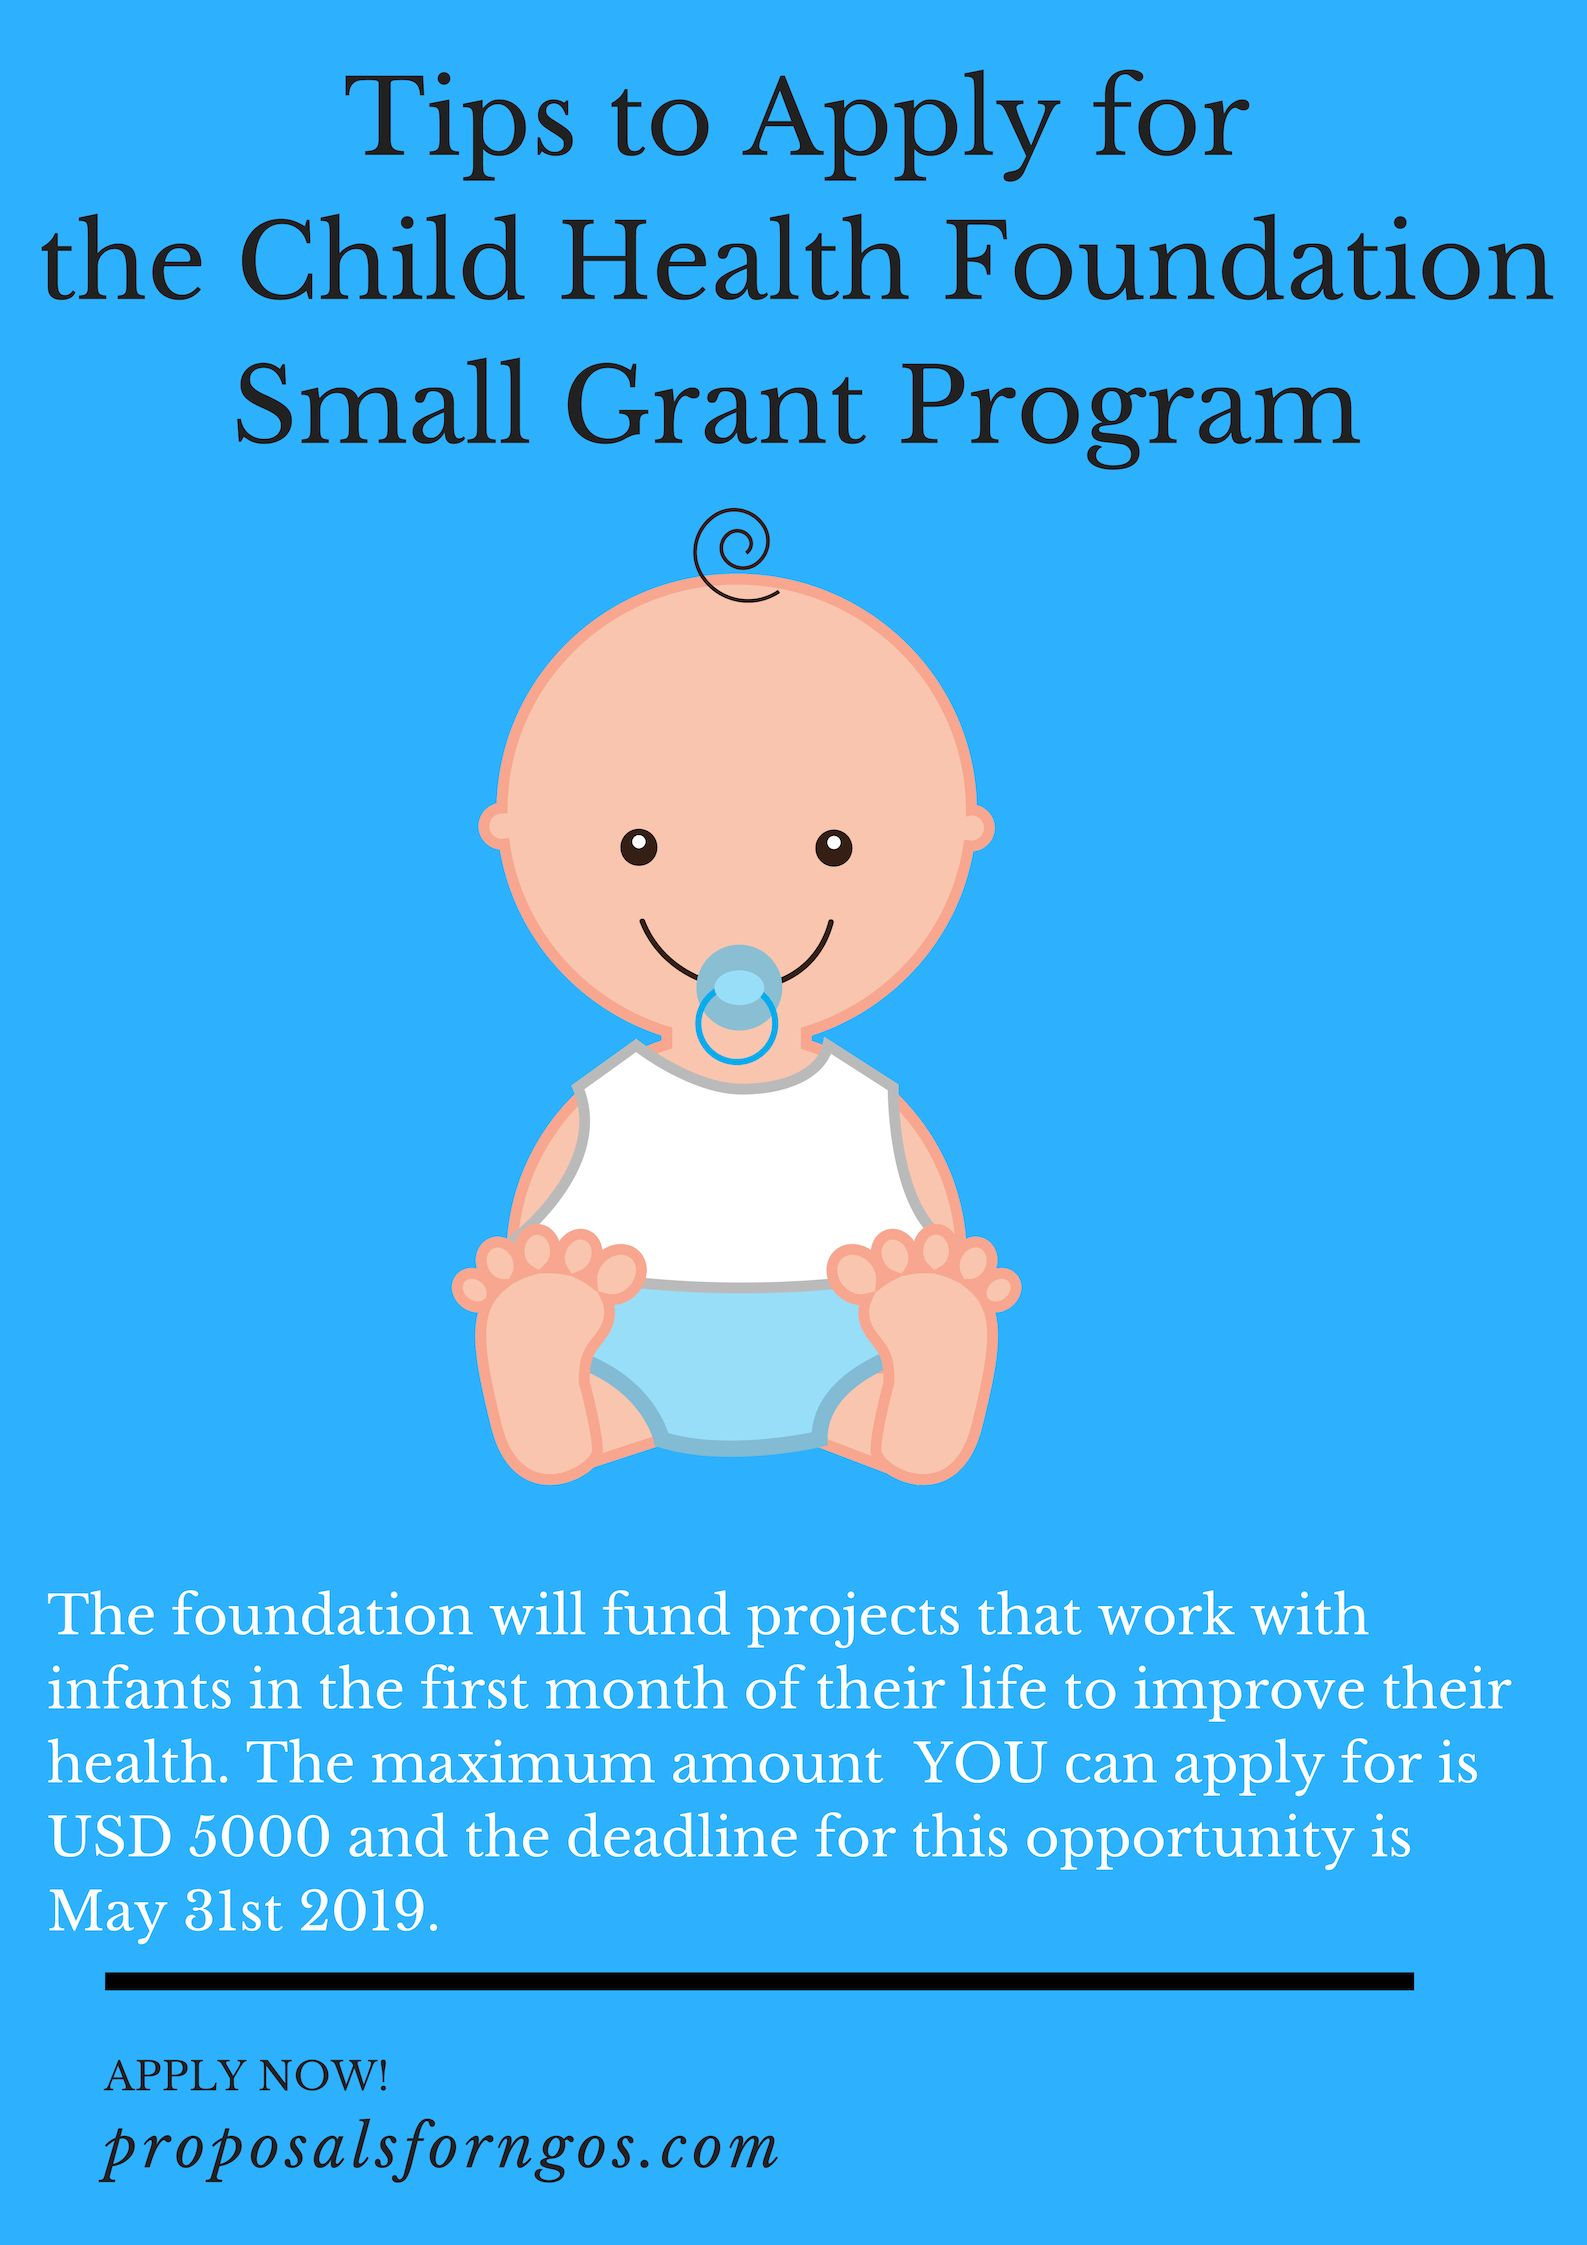 Tips to apply for the Child Health Foundation Small Grant